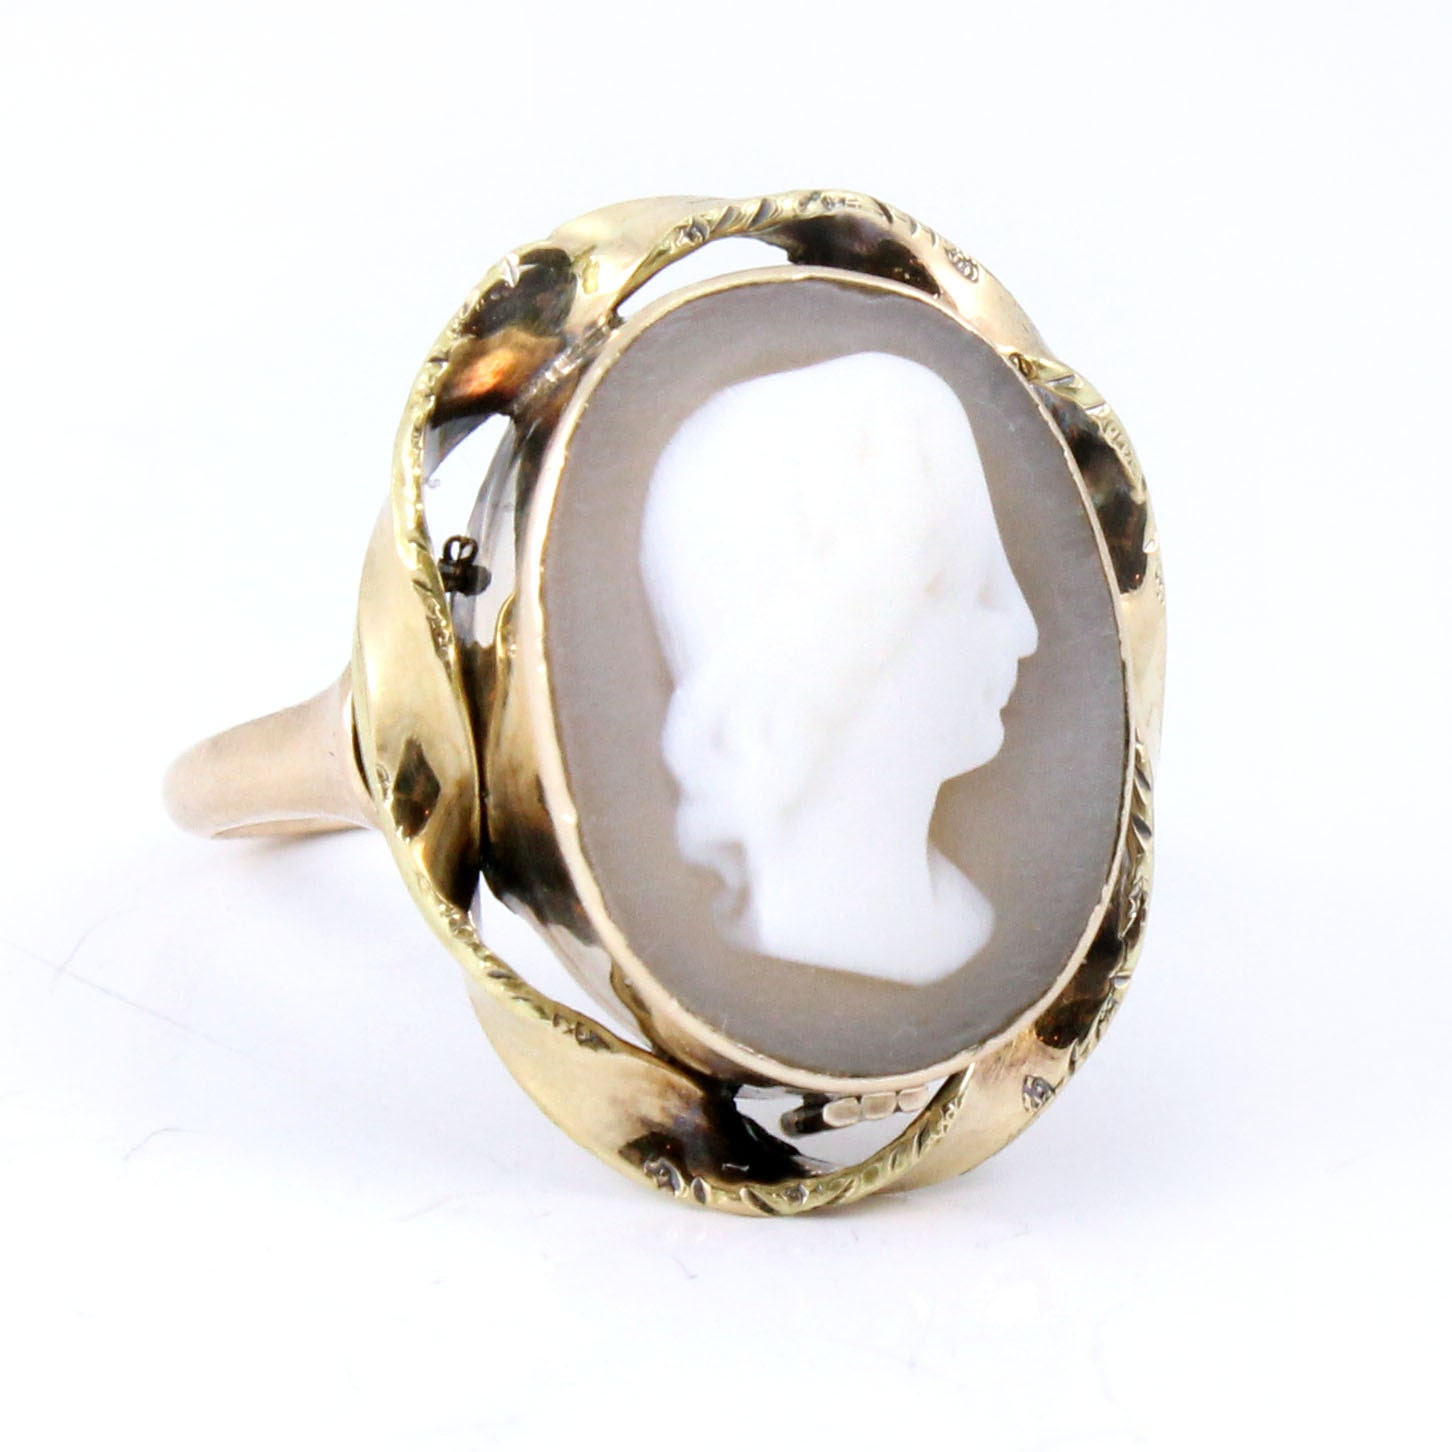 10k antique shell cameo antique ring by